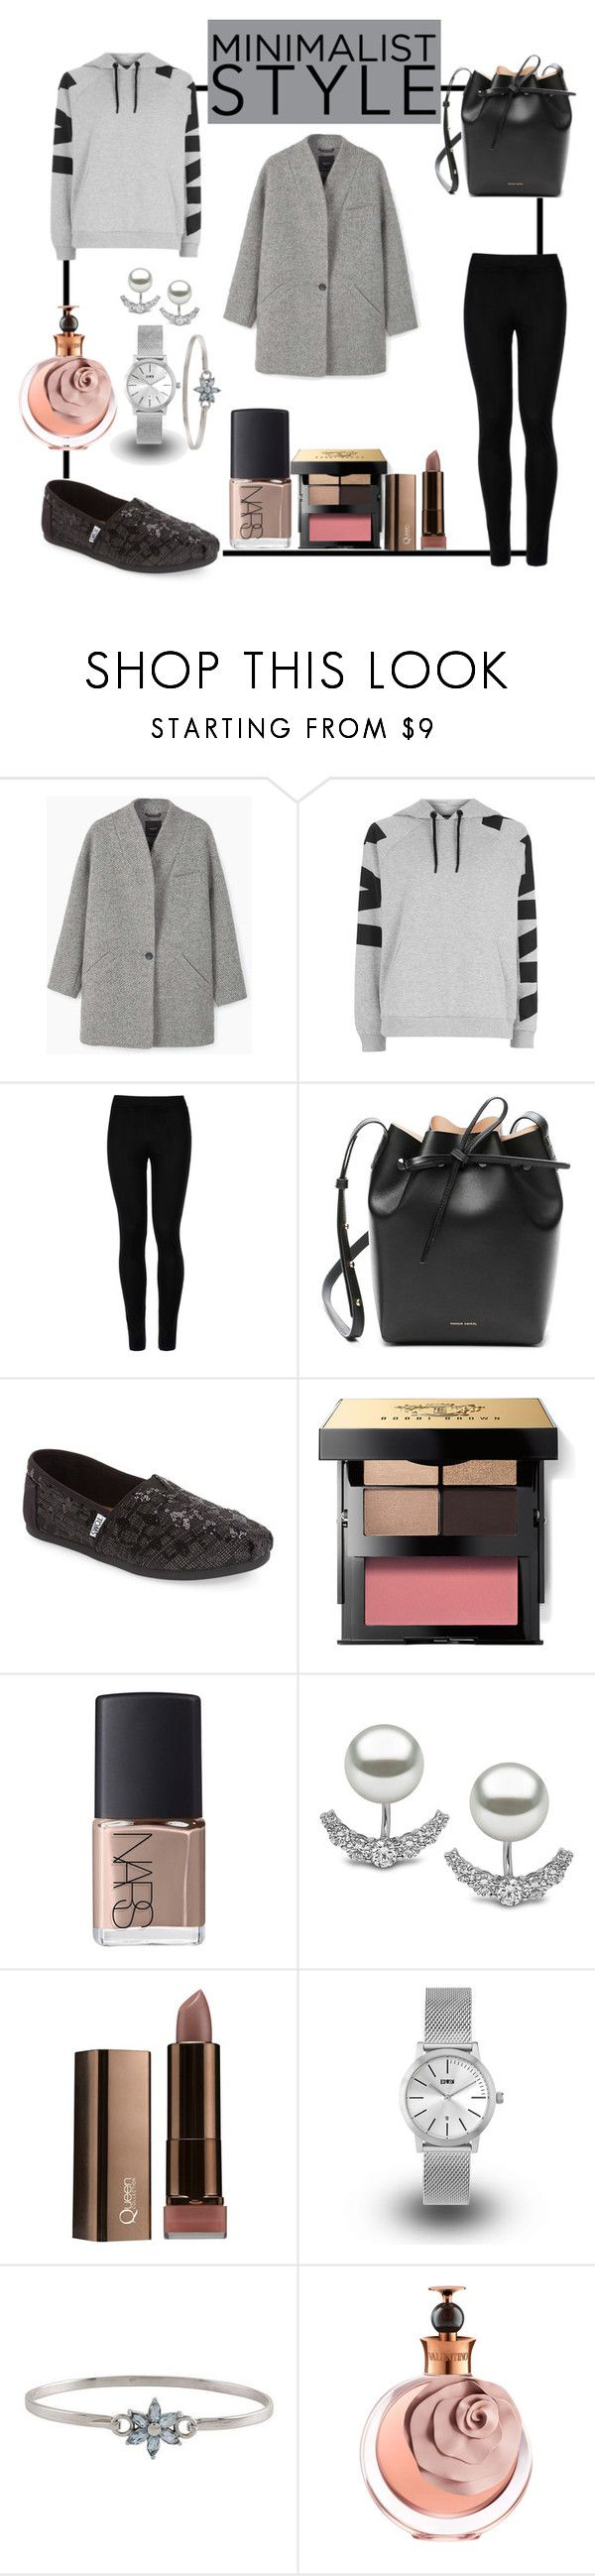 """Minimal Style"" by lafeur ❤ liked on Polyvore featuring MANGO, Topshop, Wolford, Mansur Gavriel, TOMS, Bobbi Brown Cosmetics, NARS Cosmetics, Yoko London, KENNY and NOVICA"